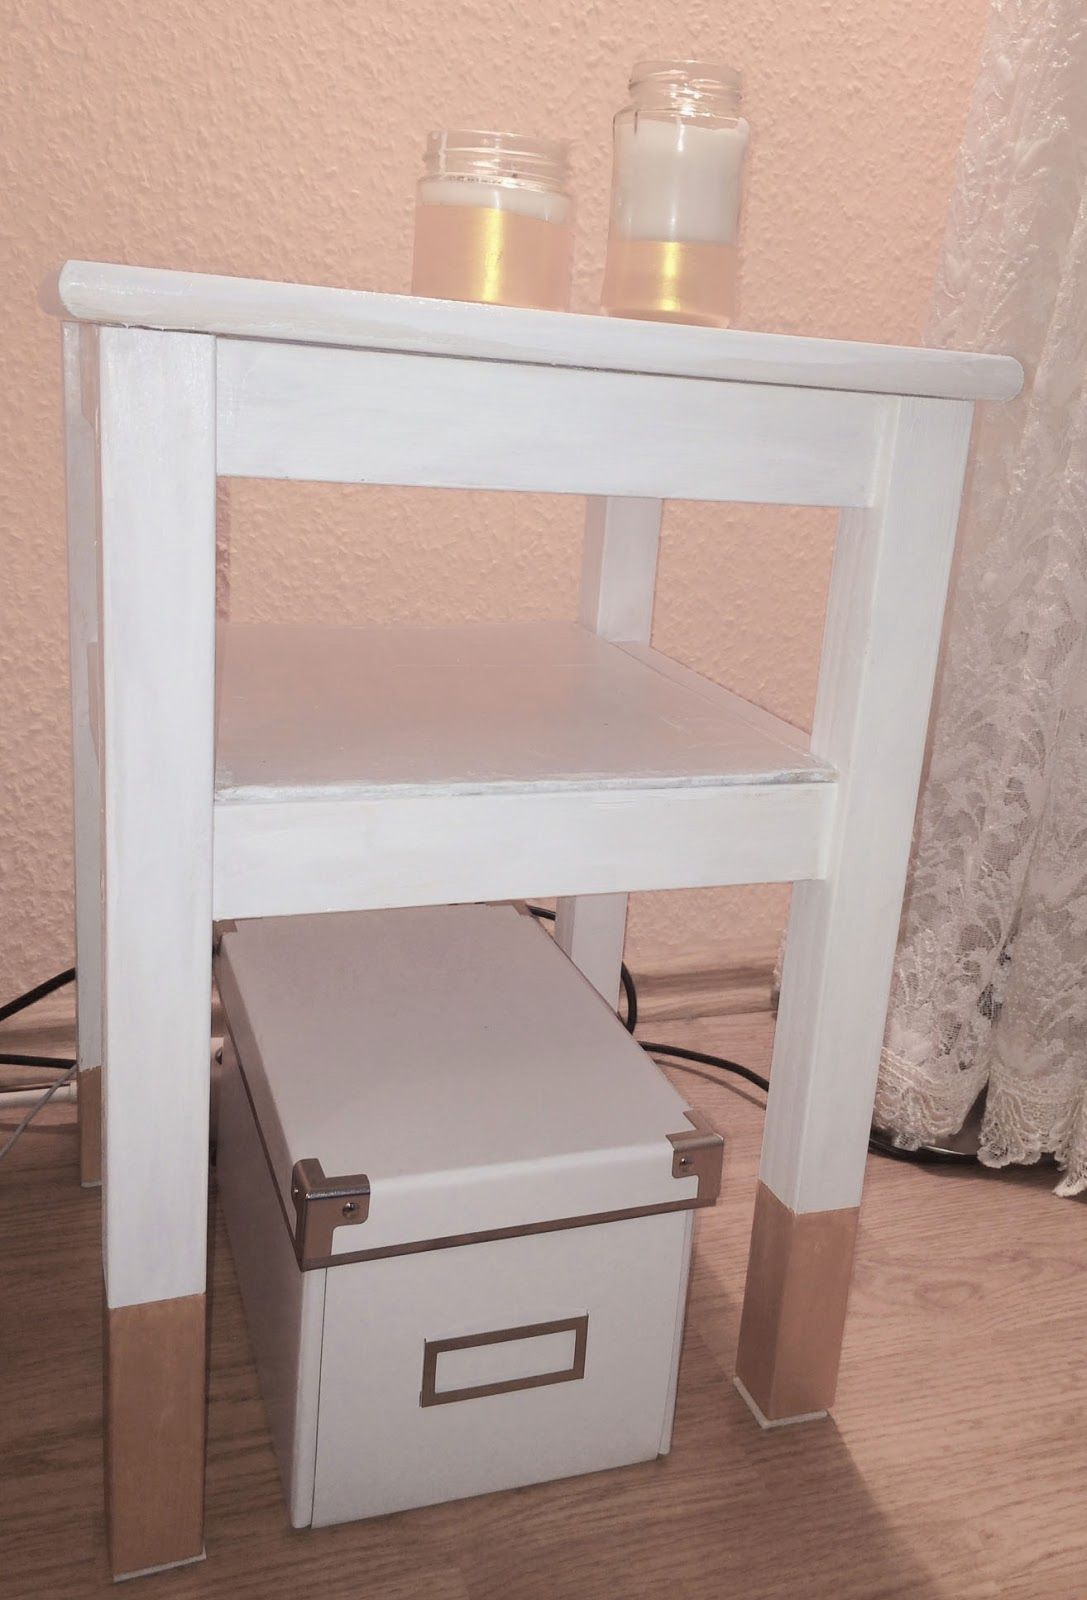 diy nachttisch ikea hack oddvar nightstand | decor | ikea hack, ikea